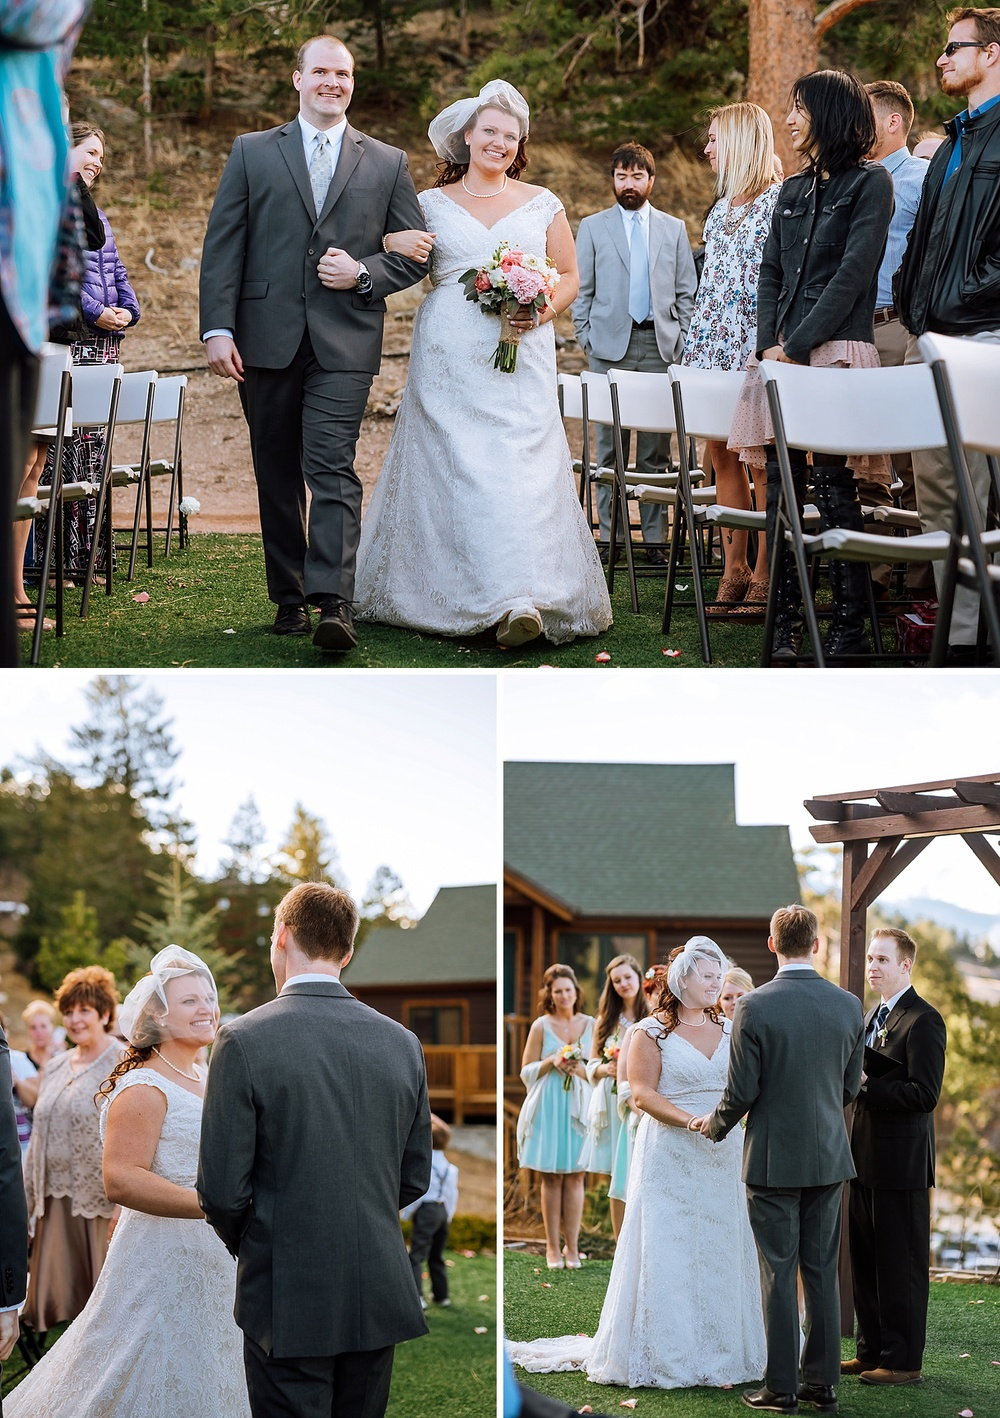 Mary's Lake Lodge in Estes Park is an amazing wedding venue up in Estes Park! I would love to be surrounded by those mountains during my wedding! Photo by Maddie Mae Photography